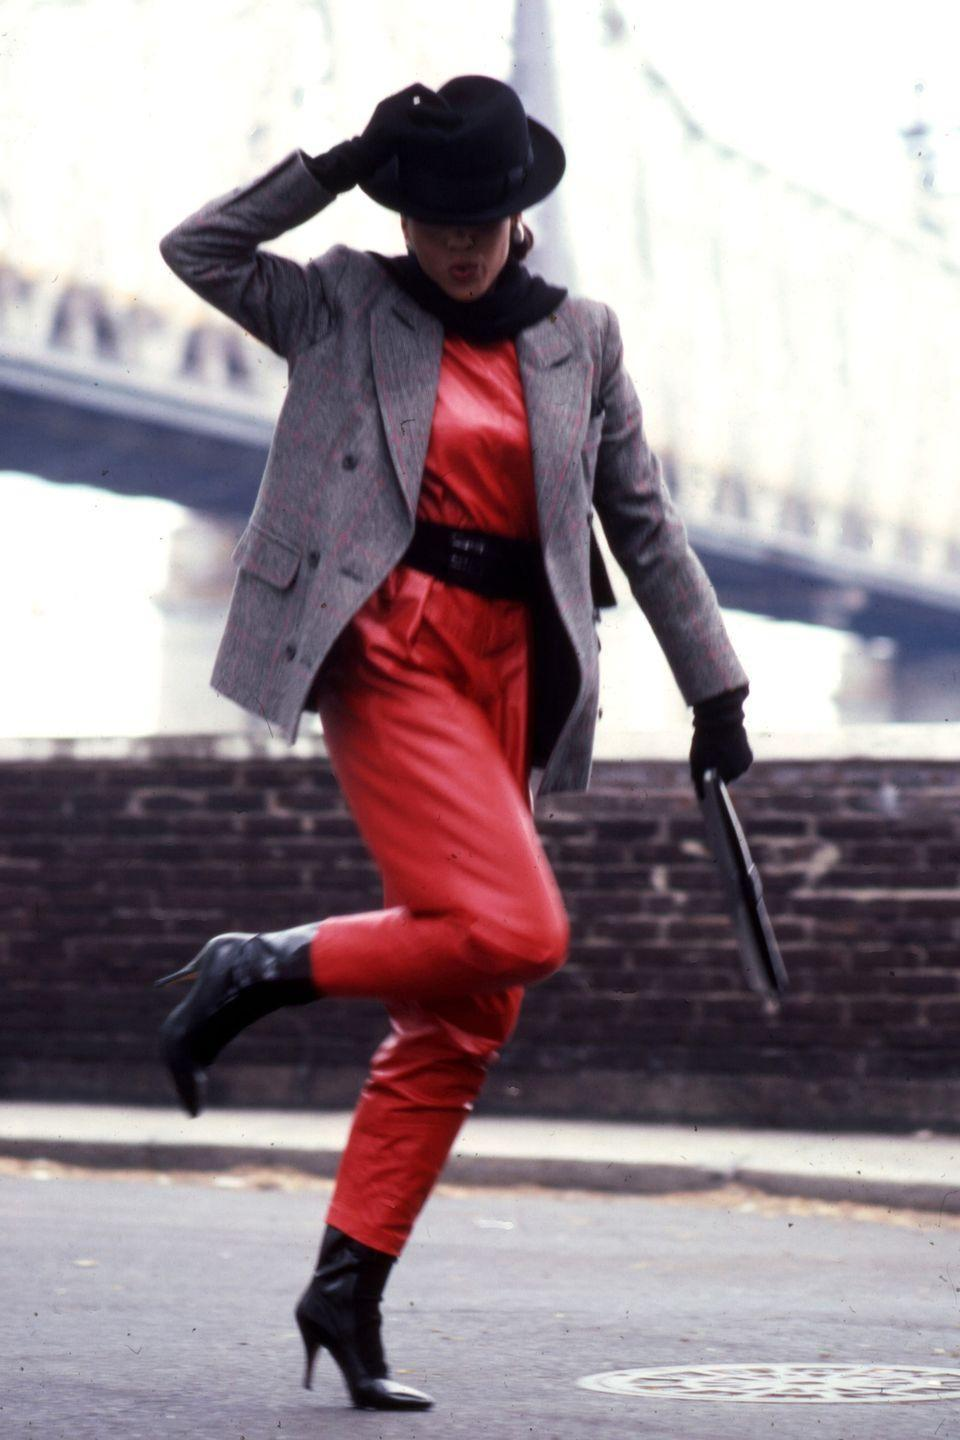 <p>A model wears a red jumpsuit, gray blazer, and black hat for photographs in front of a bridge in New York.</p>